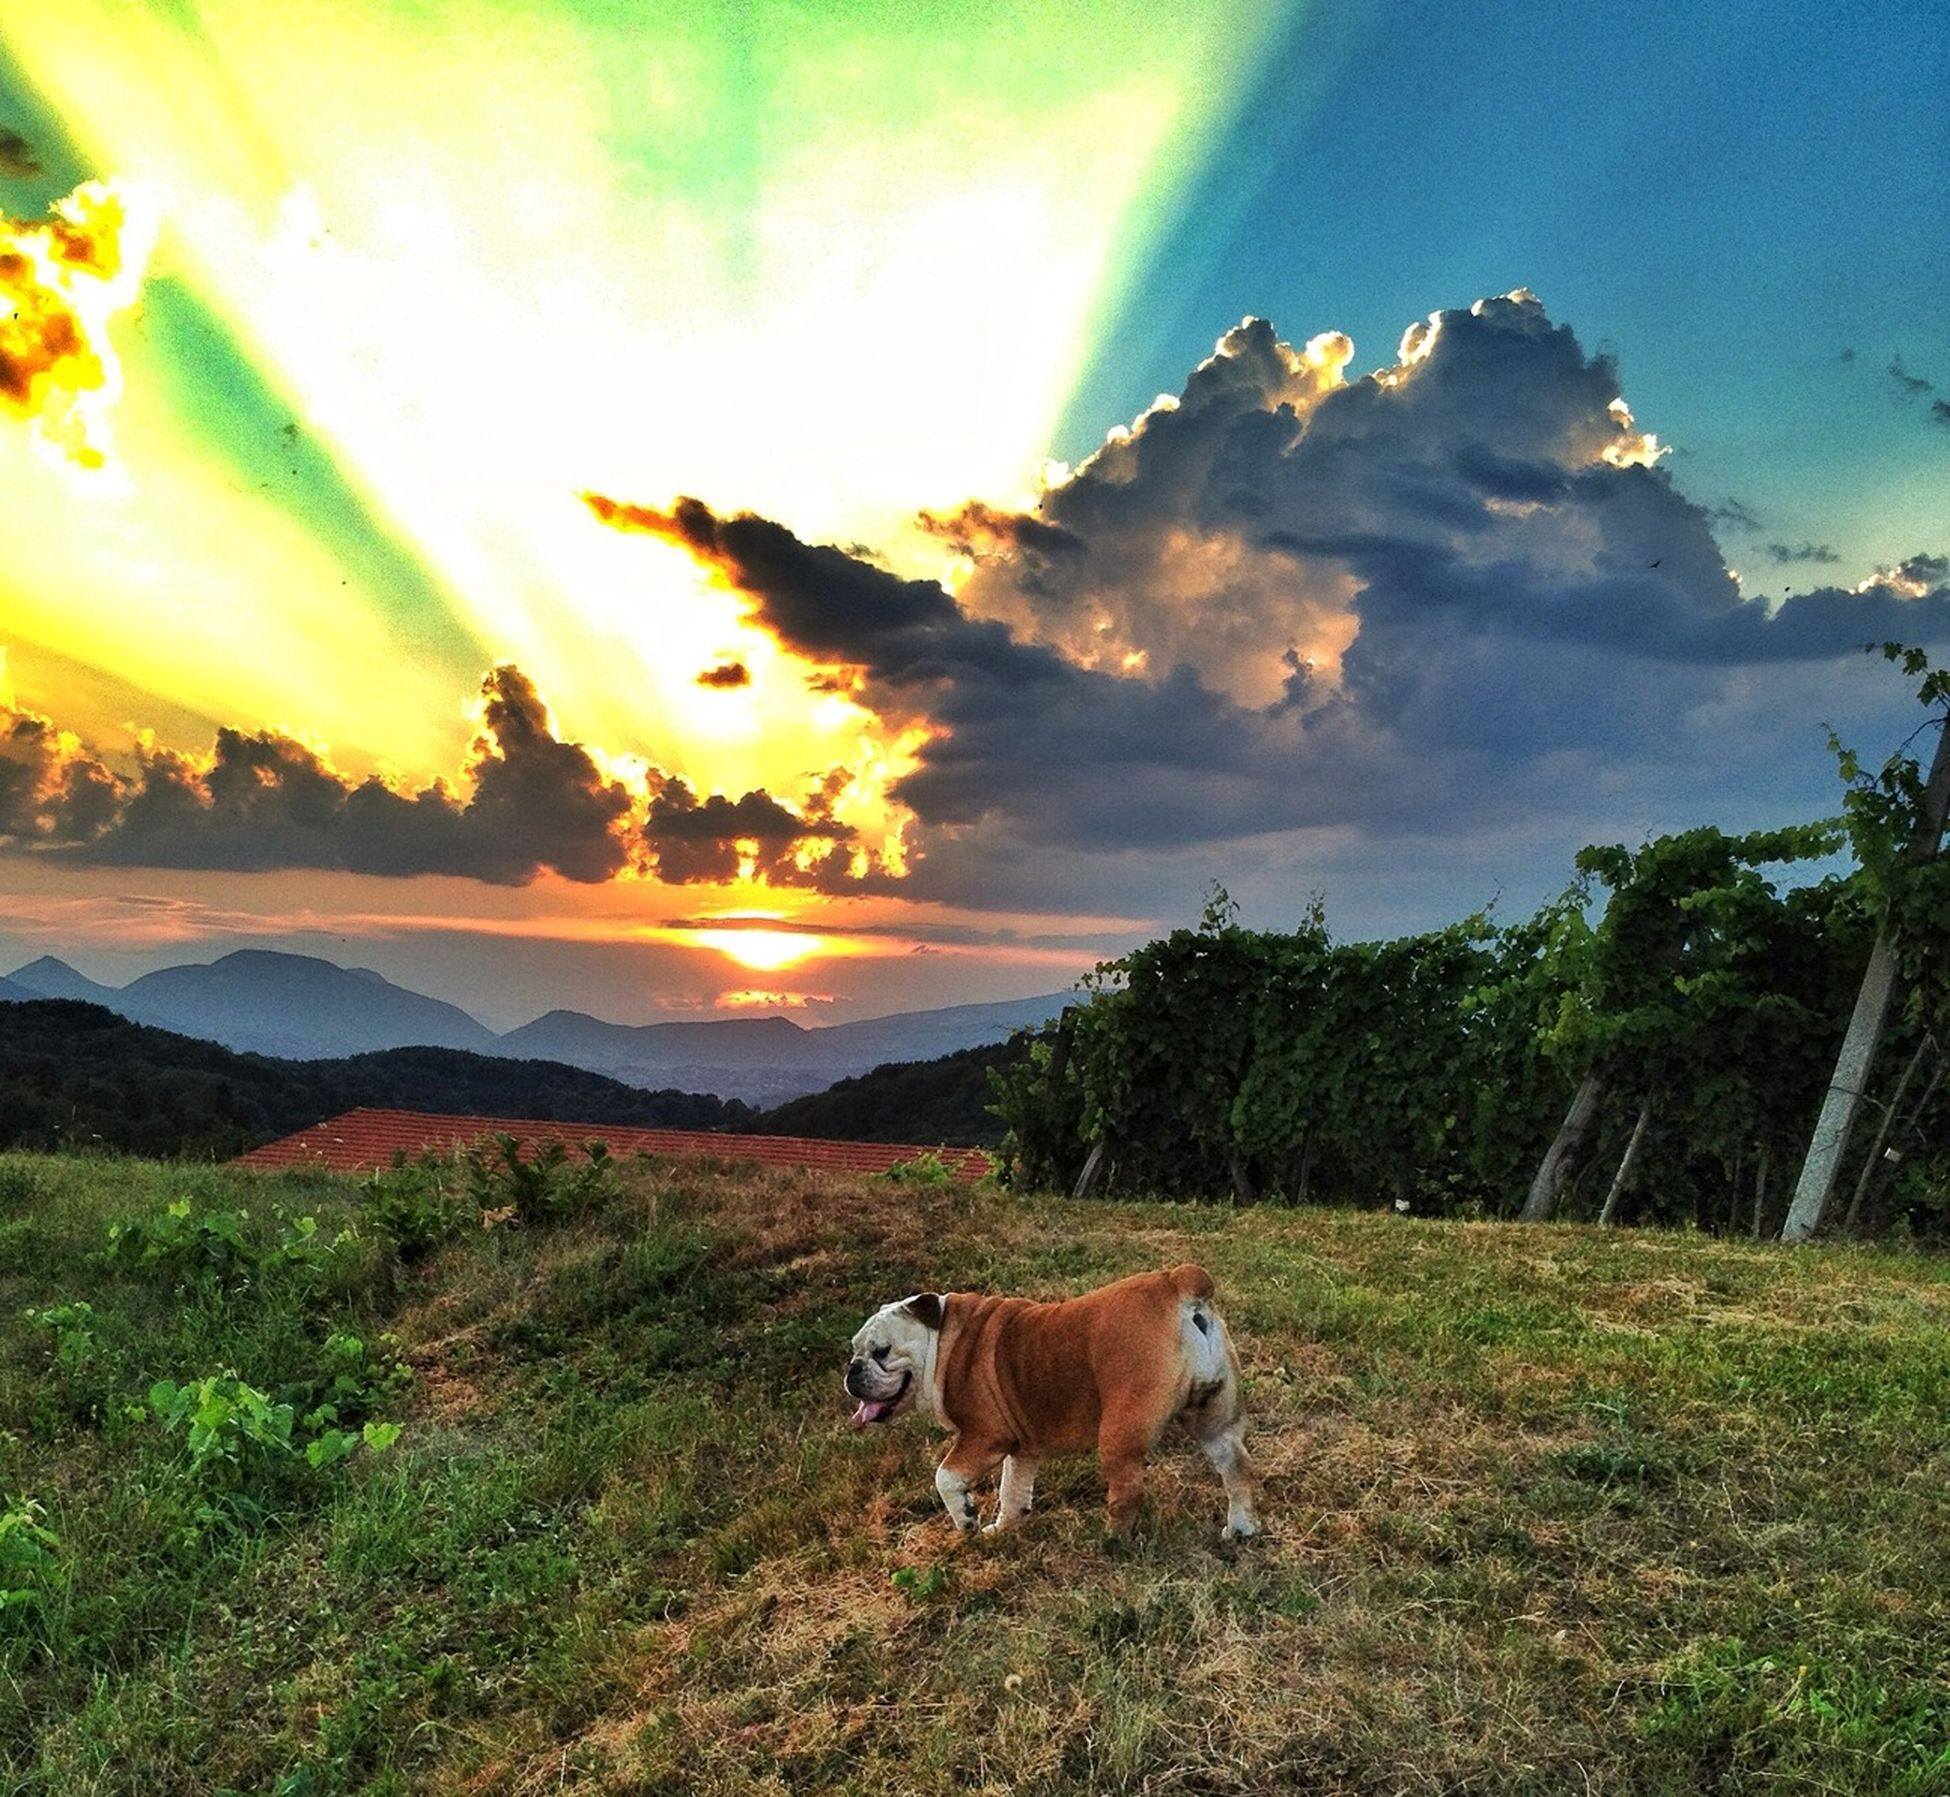 domestic animals, animal themes, mammal, one animal, pets, sky, grass, dog, cloud - sky, sunset, tranquil scene, landscape, field, tranquility, nature, sun, scenics, beauty in nature, sunlight, livestock